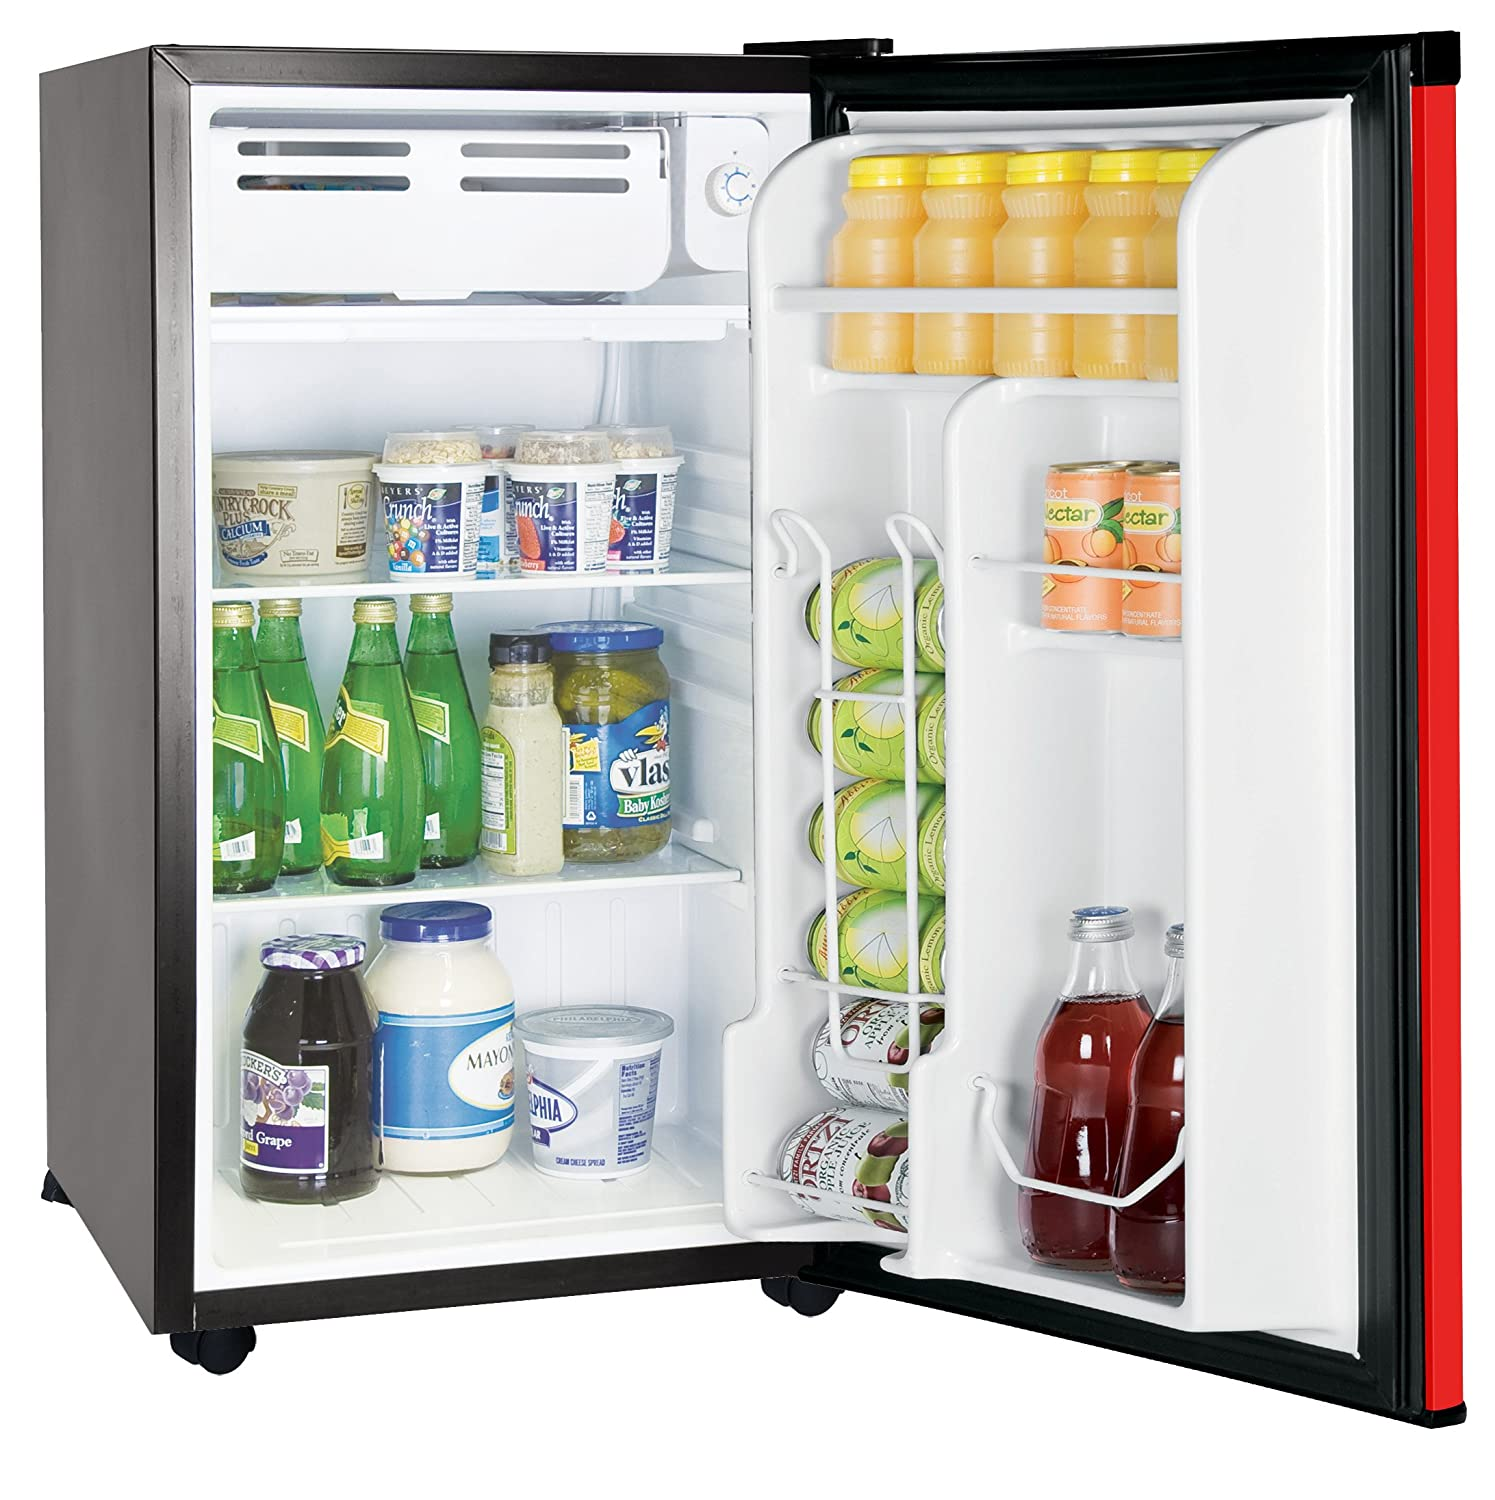 rc refrigerator depot garage depth french counter together in appealing frigidaire at with door home ge robust stainless refrigerators gallery